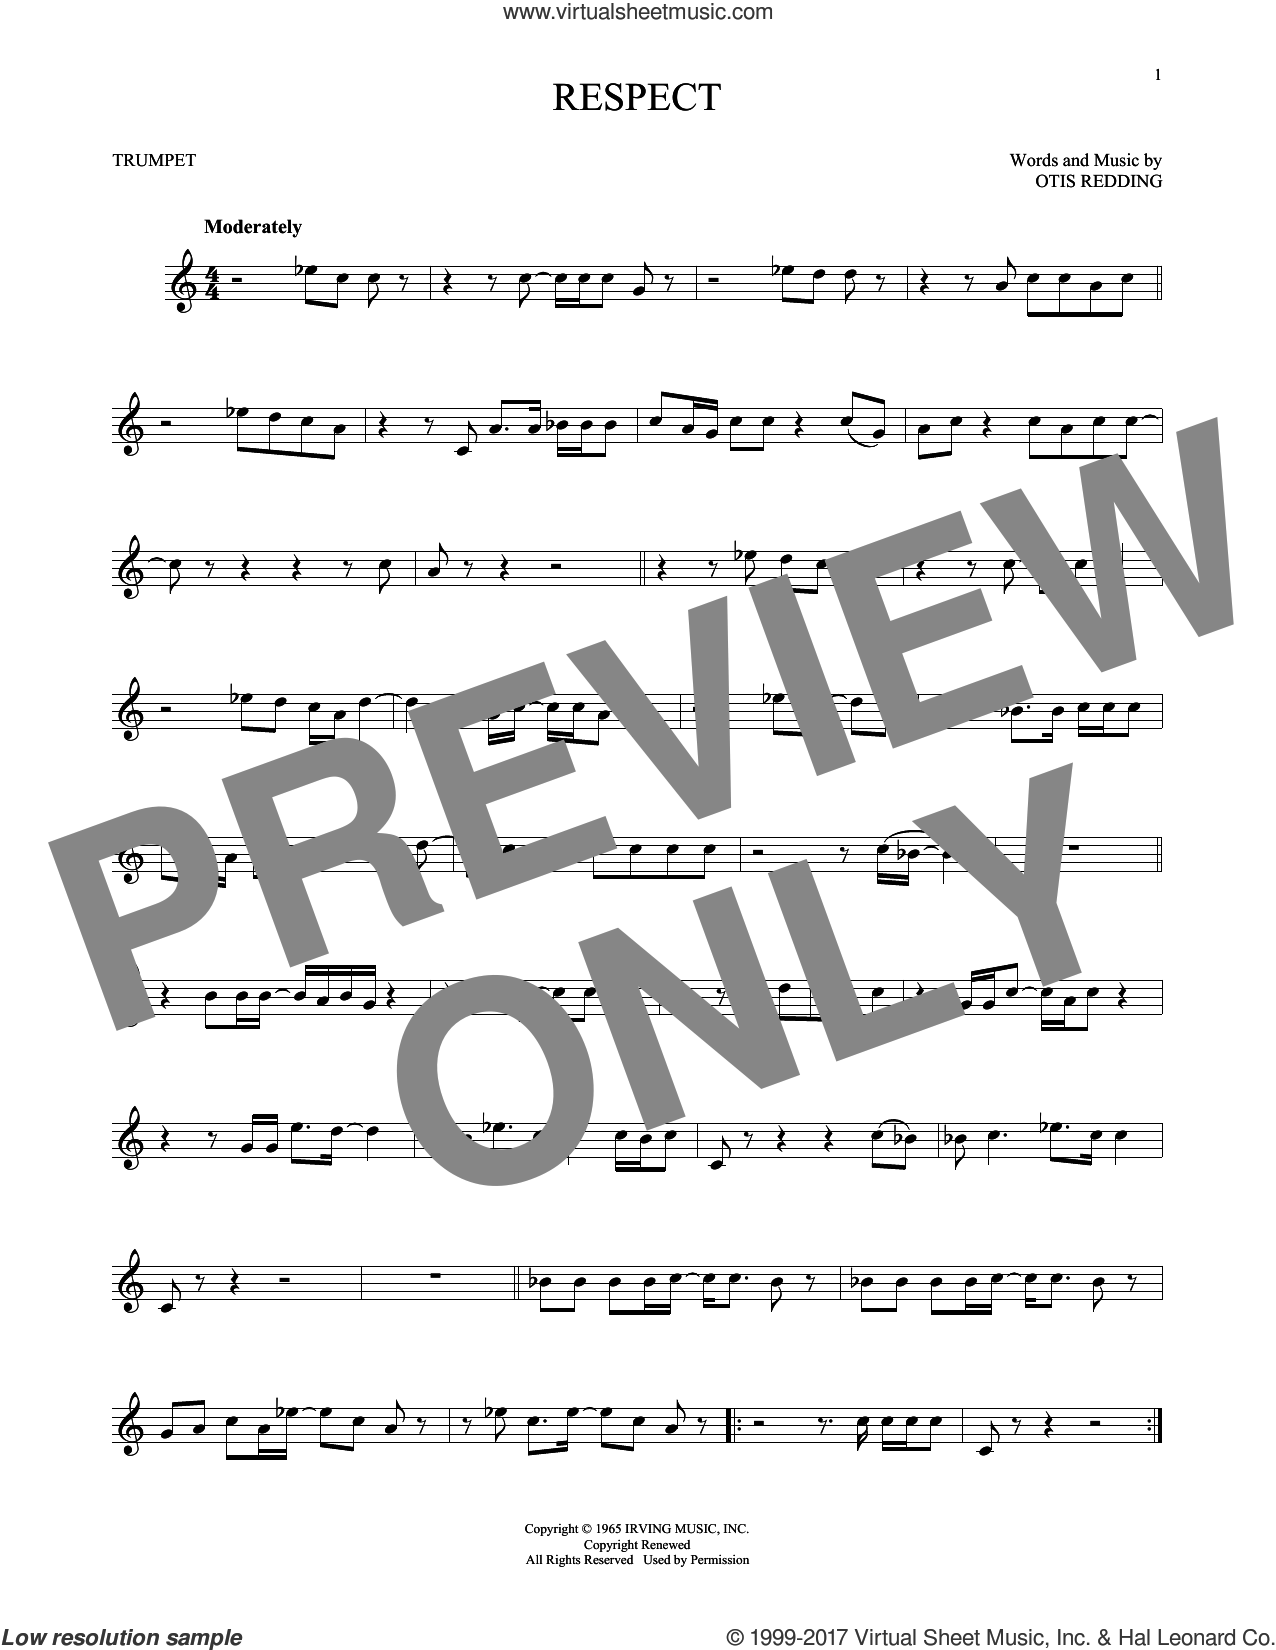 Respect sheet music for trumpet solo by Aretha Franklin and Otis Redding, intermediate skill level